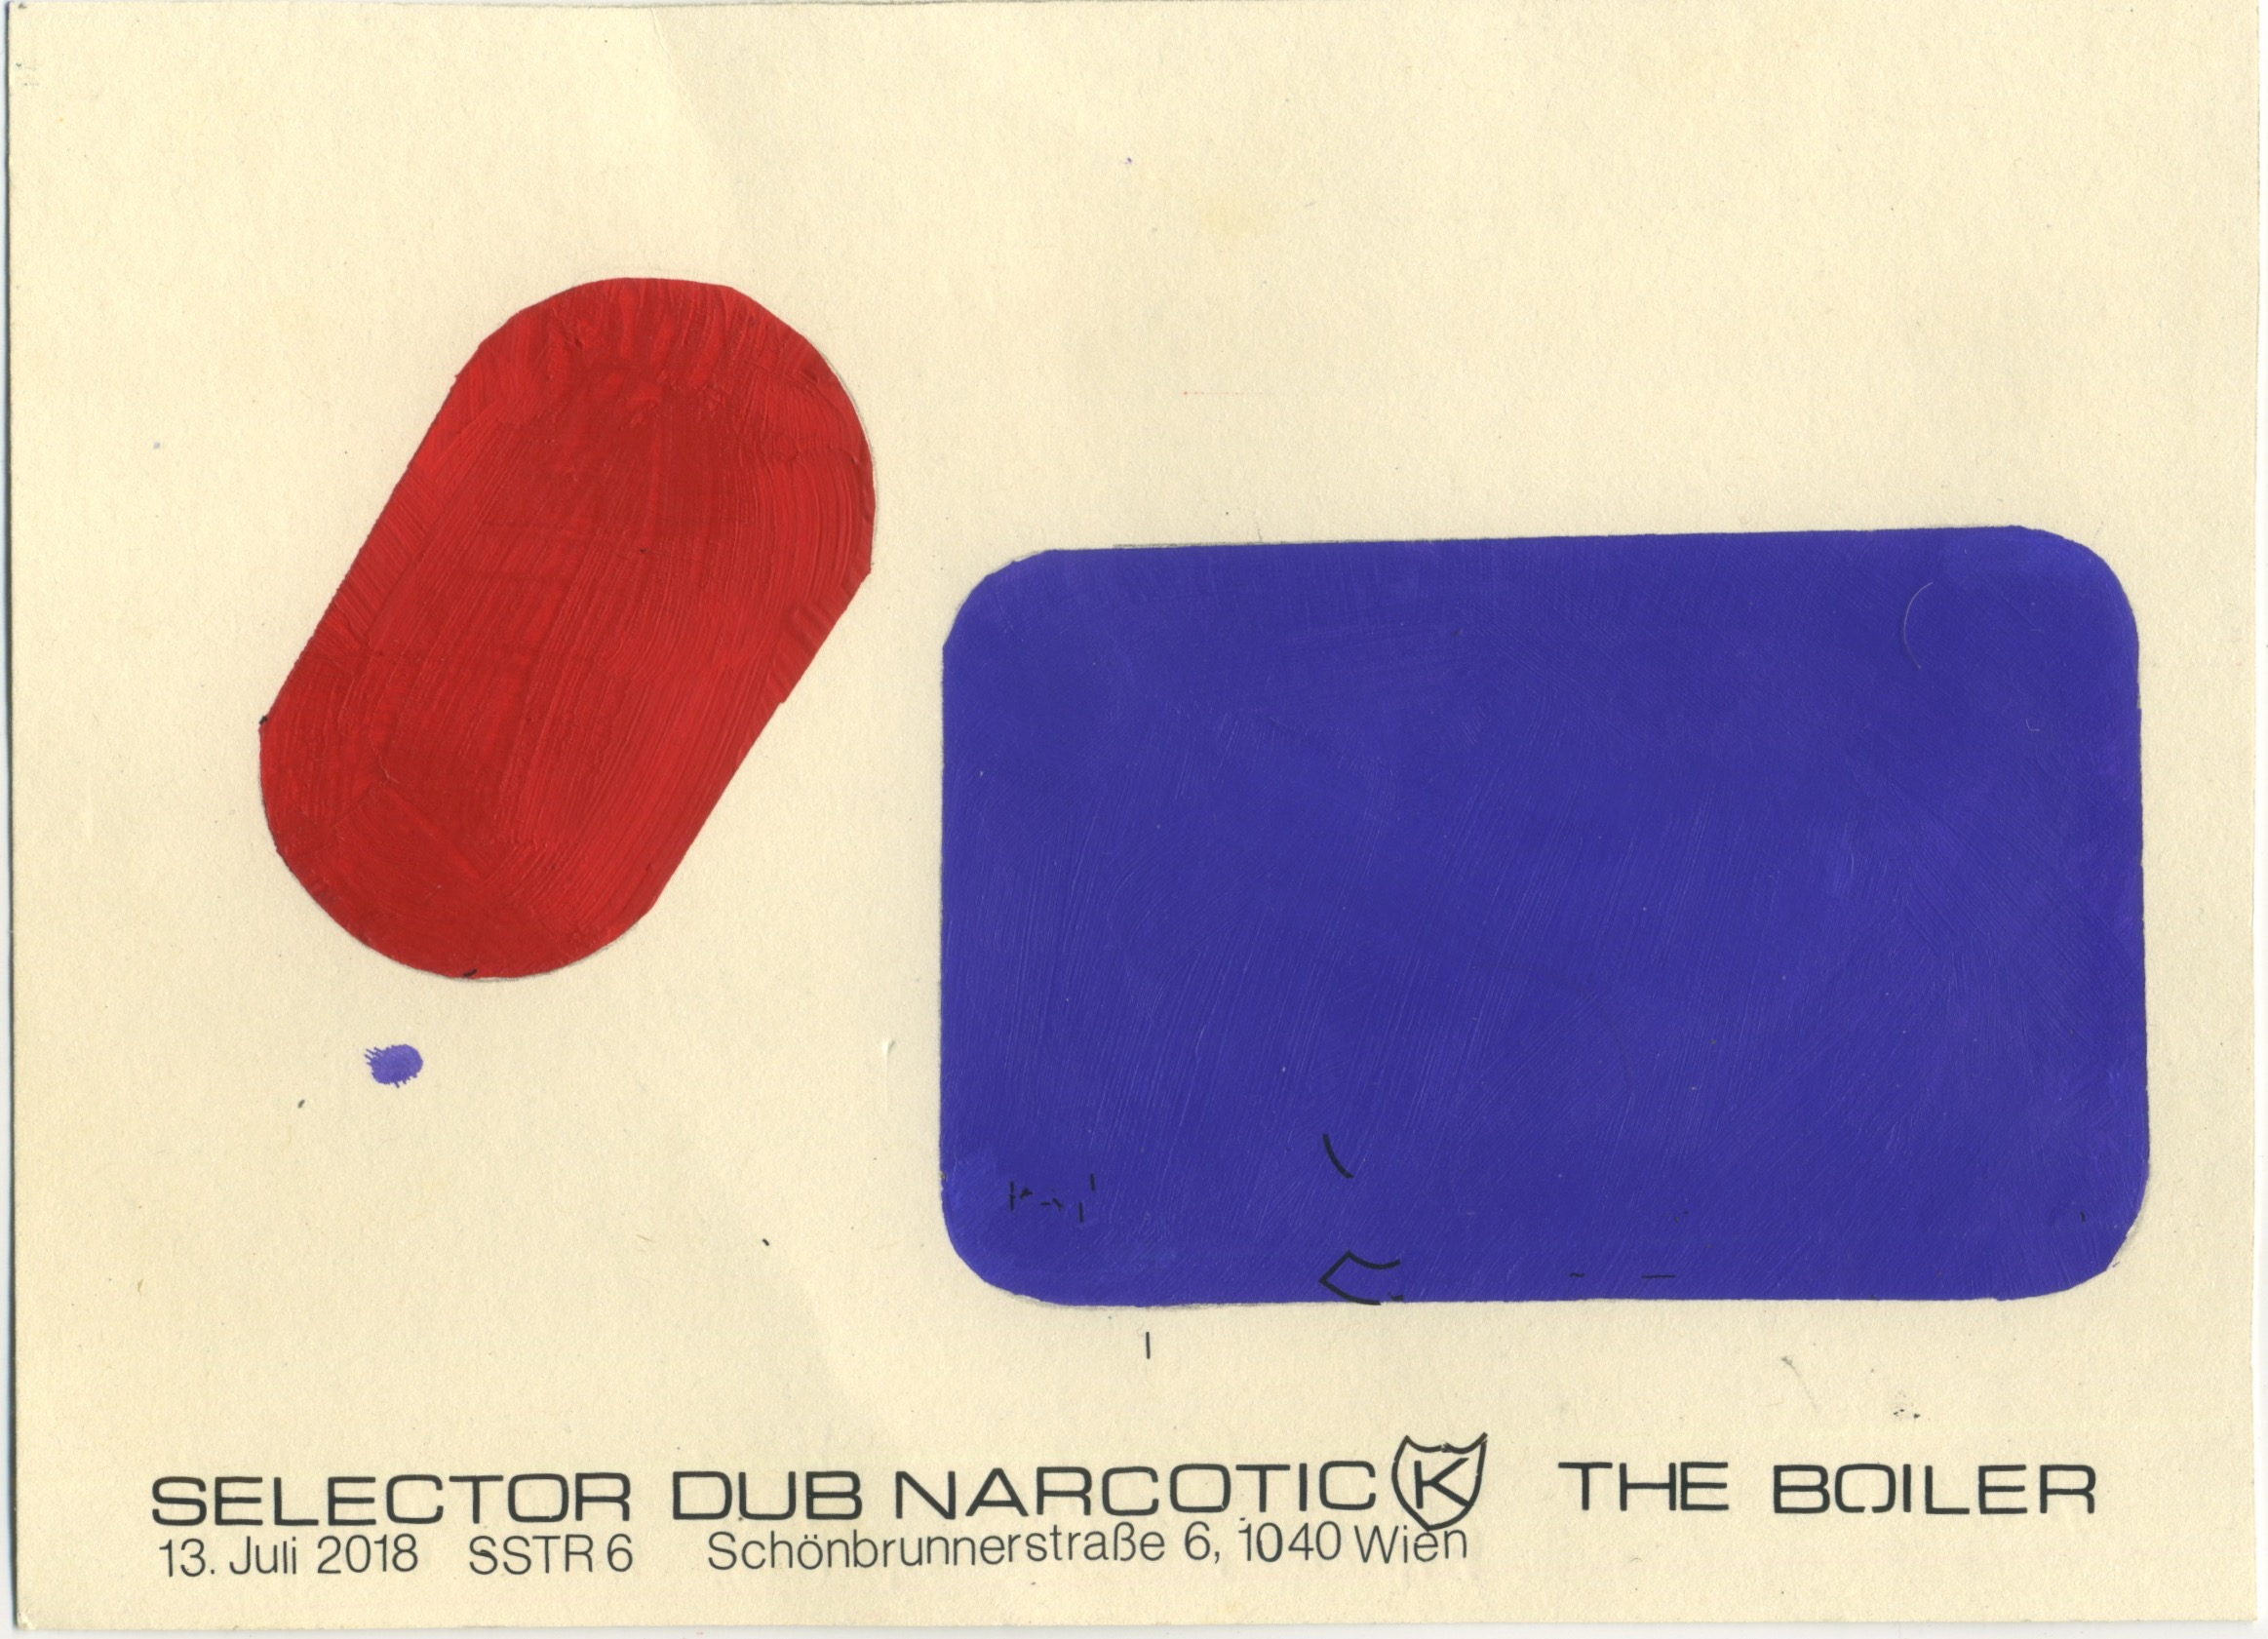 Selector Dub Narcotic & The Boiler